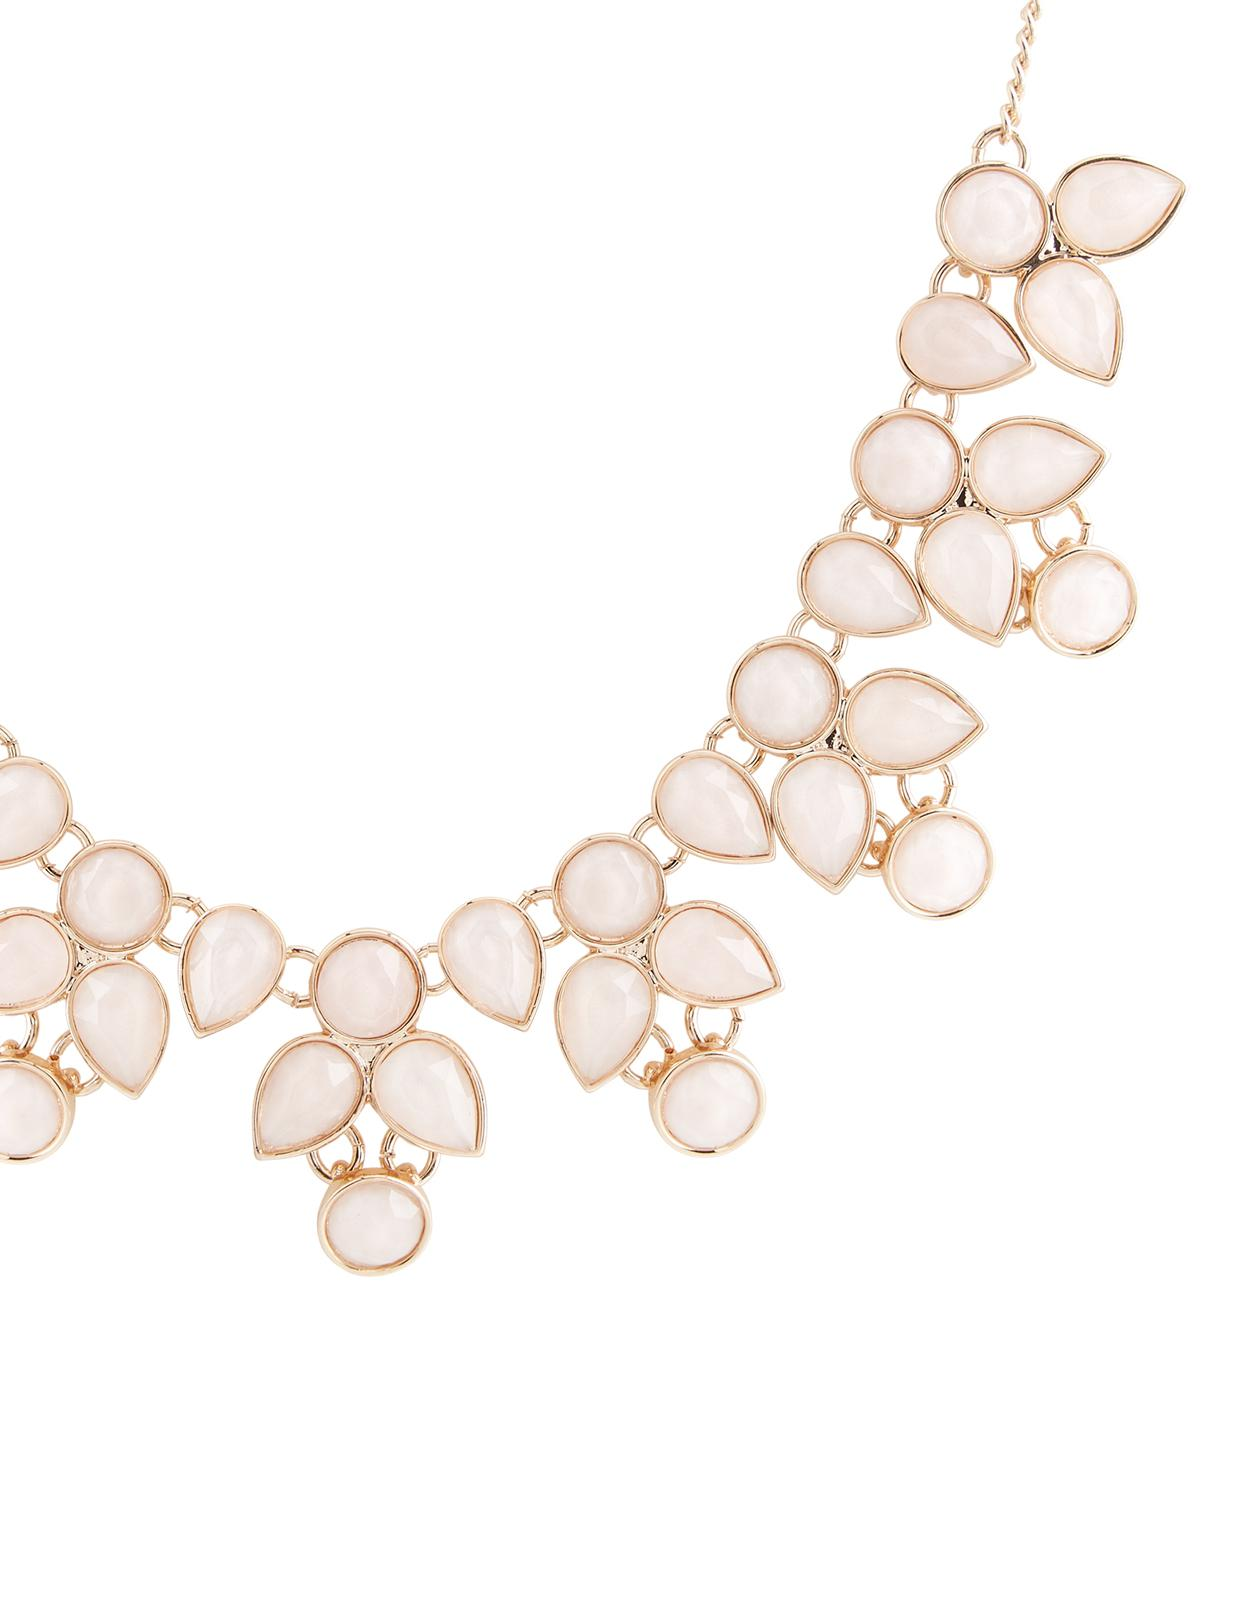 Accessorize Penelope Resin Round Necklace in Pink